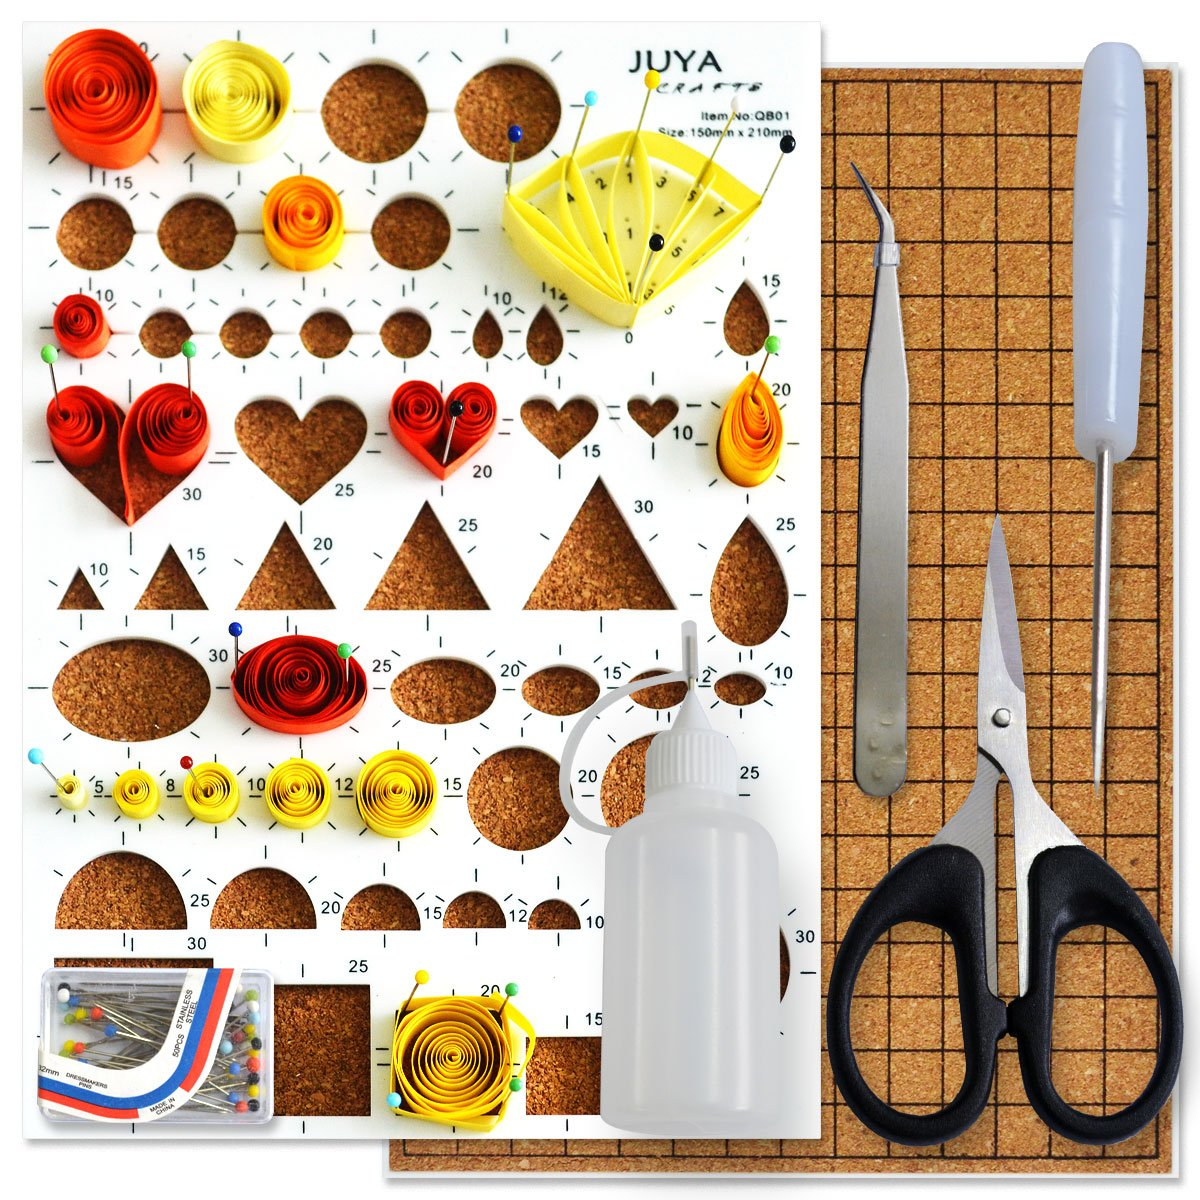 Paper Width 3mm JUYA Paper Qillling Kit with Blue Tools 960 Strips Board Mould Crimper Coach Comb